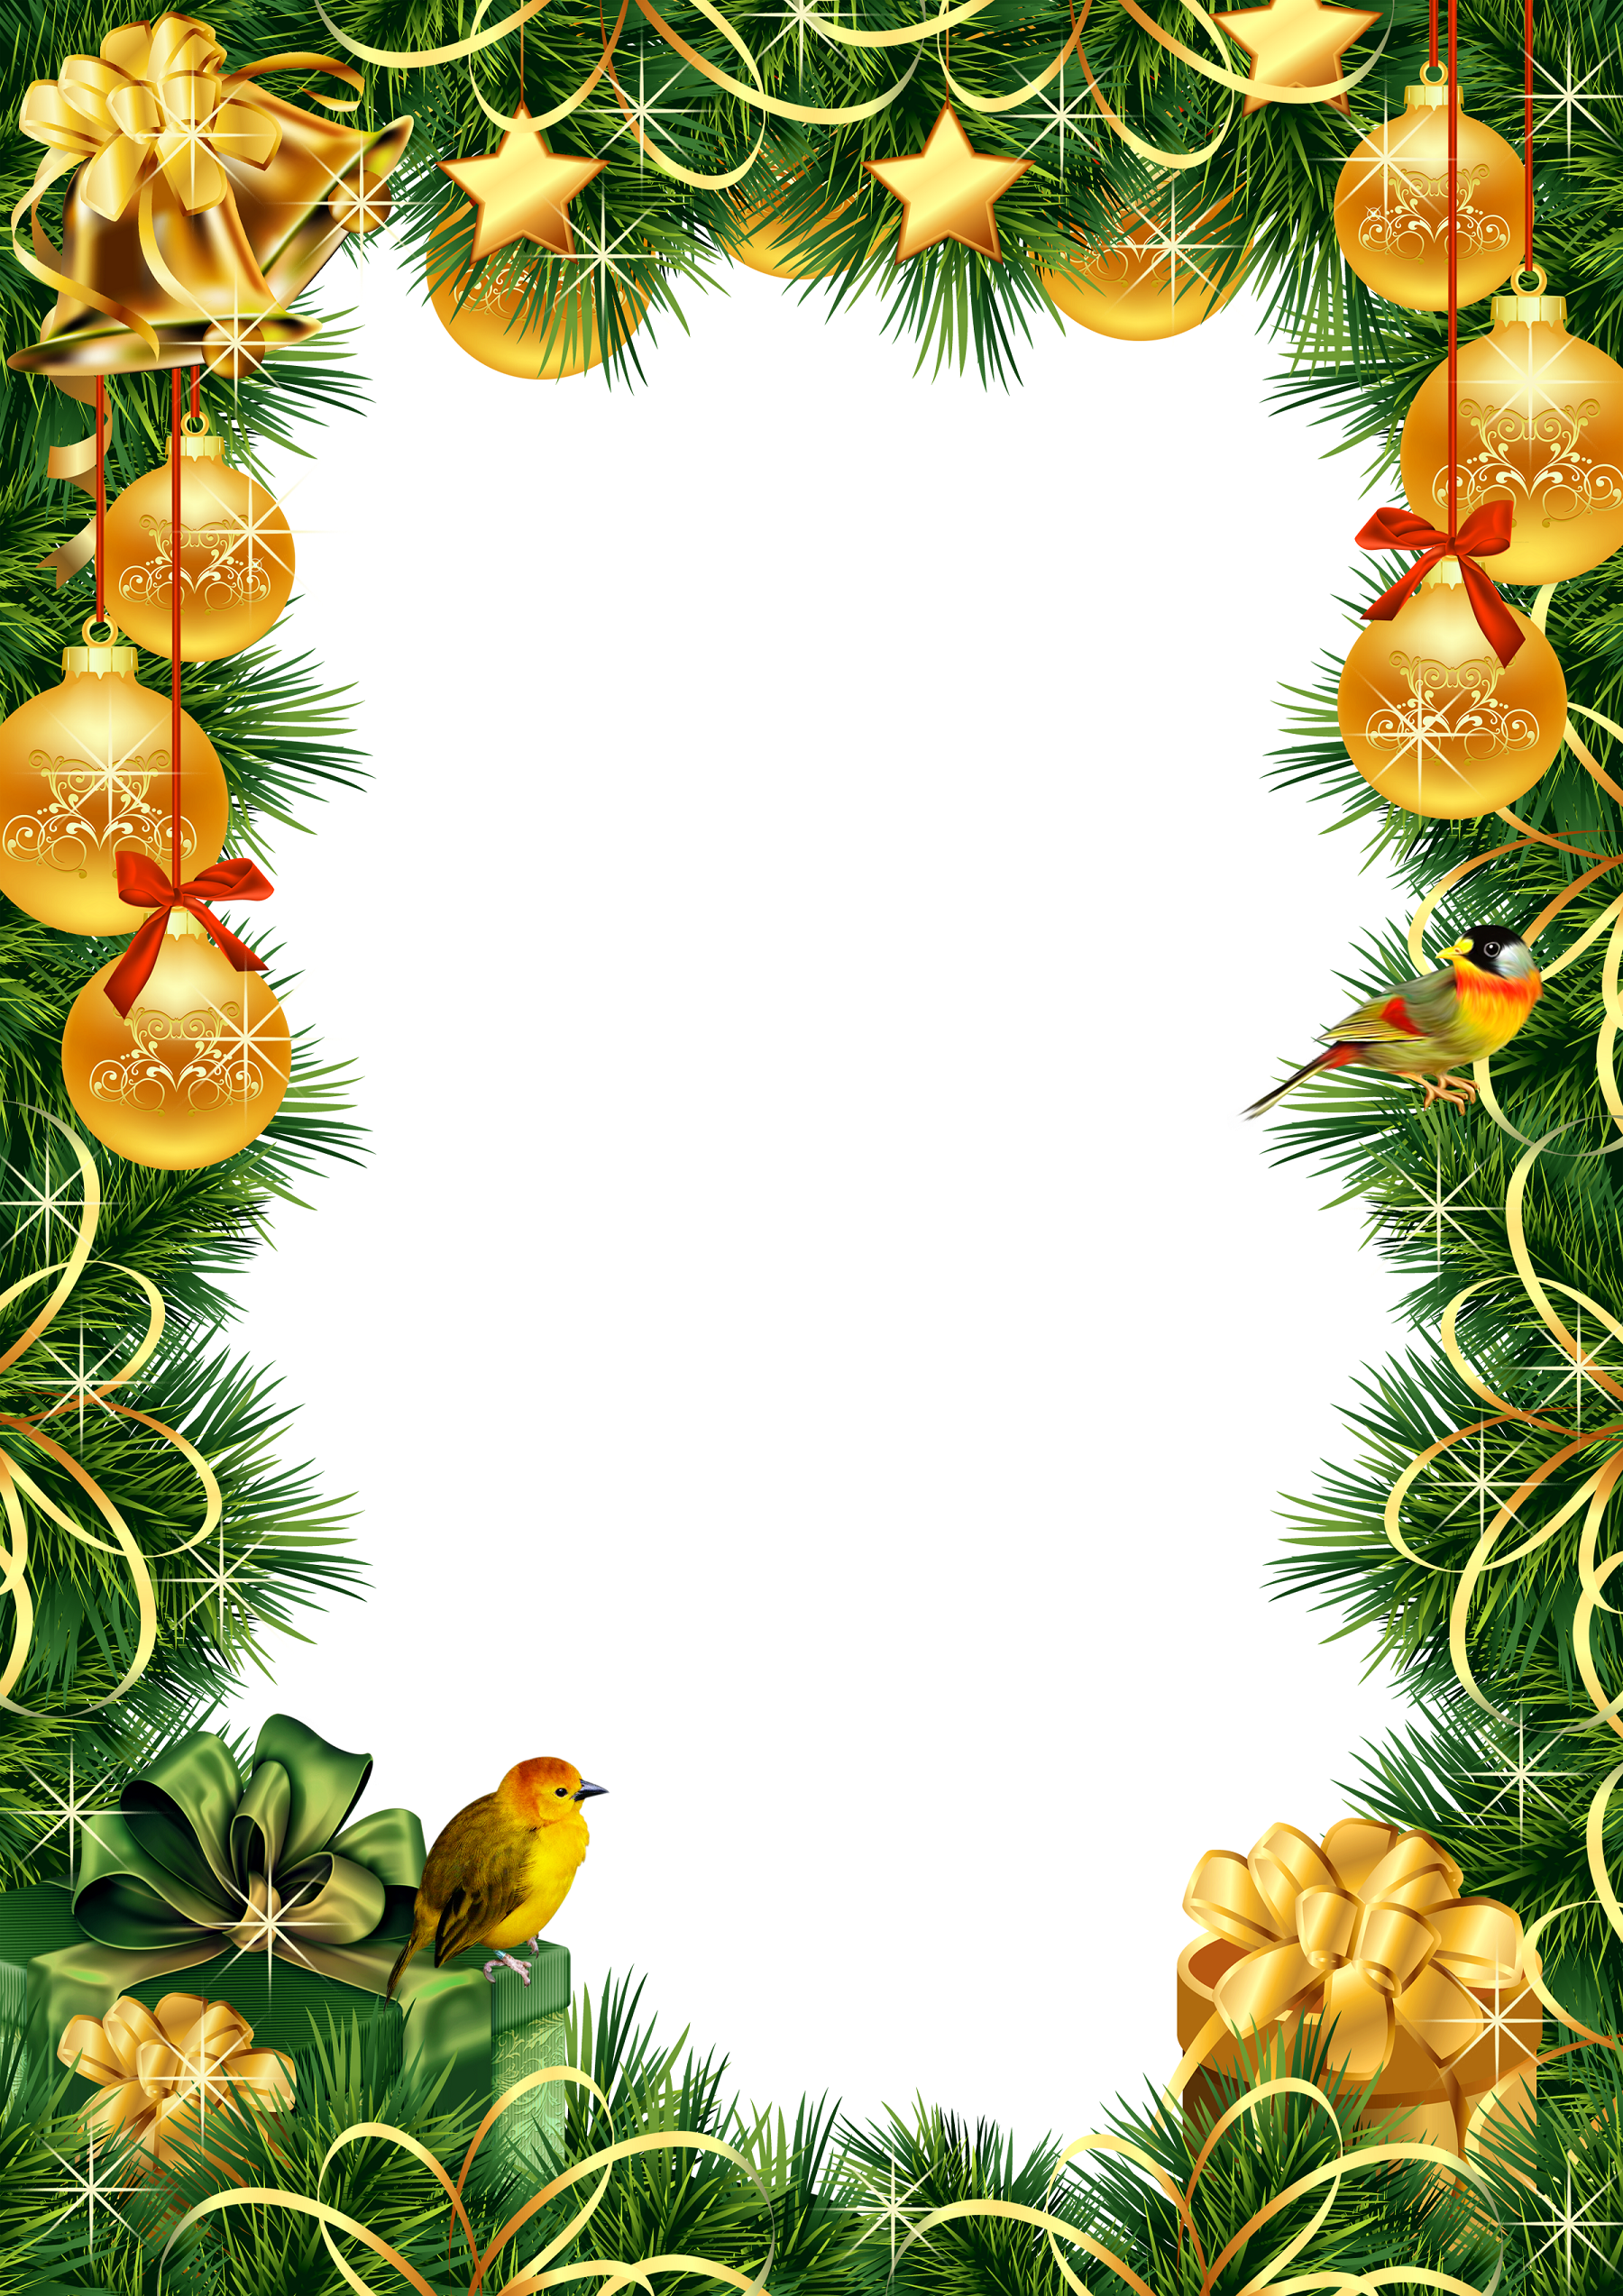 Ball ornament picture frame clipart jpg library library Christmas photo frame with ornaments and pine | Clip Art Holiday ... jpg library library